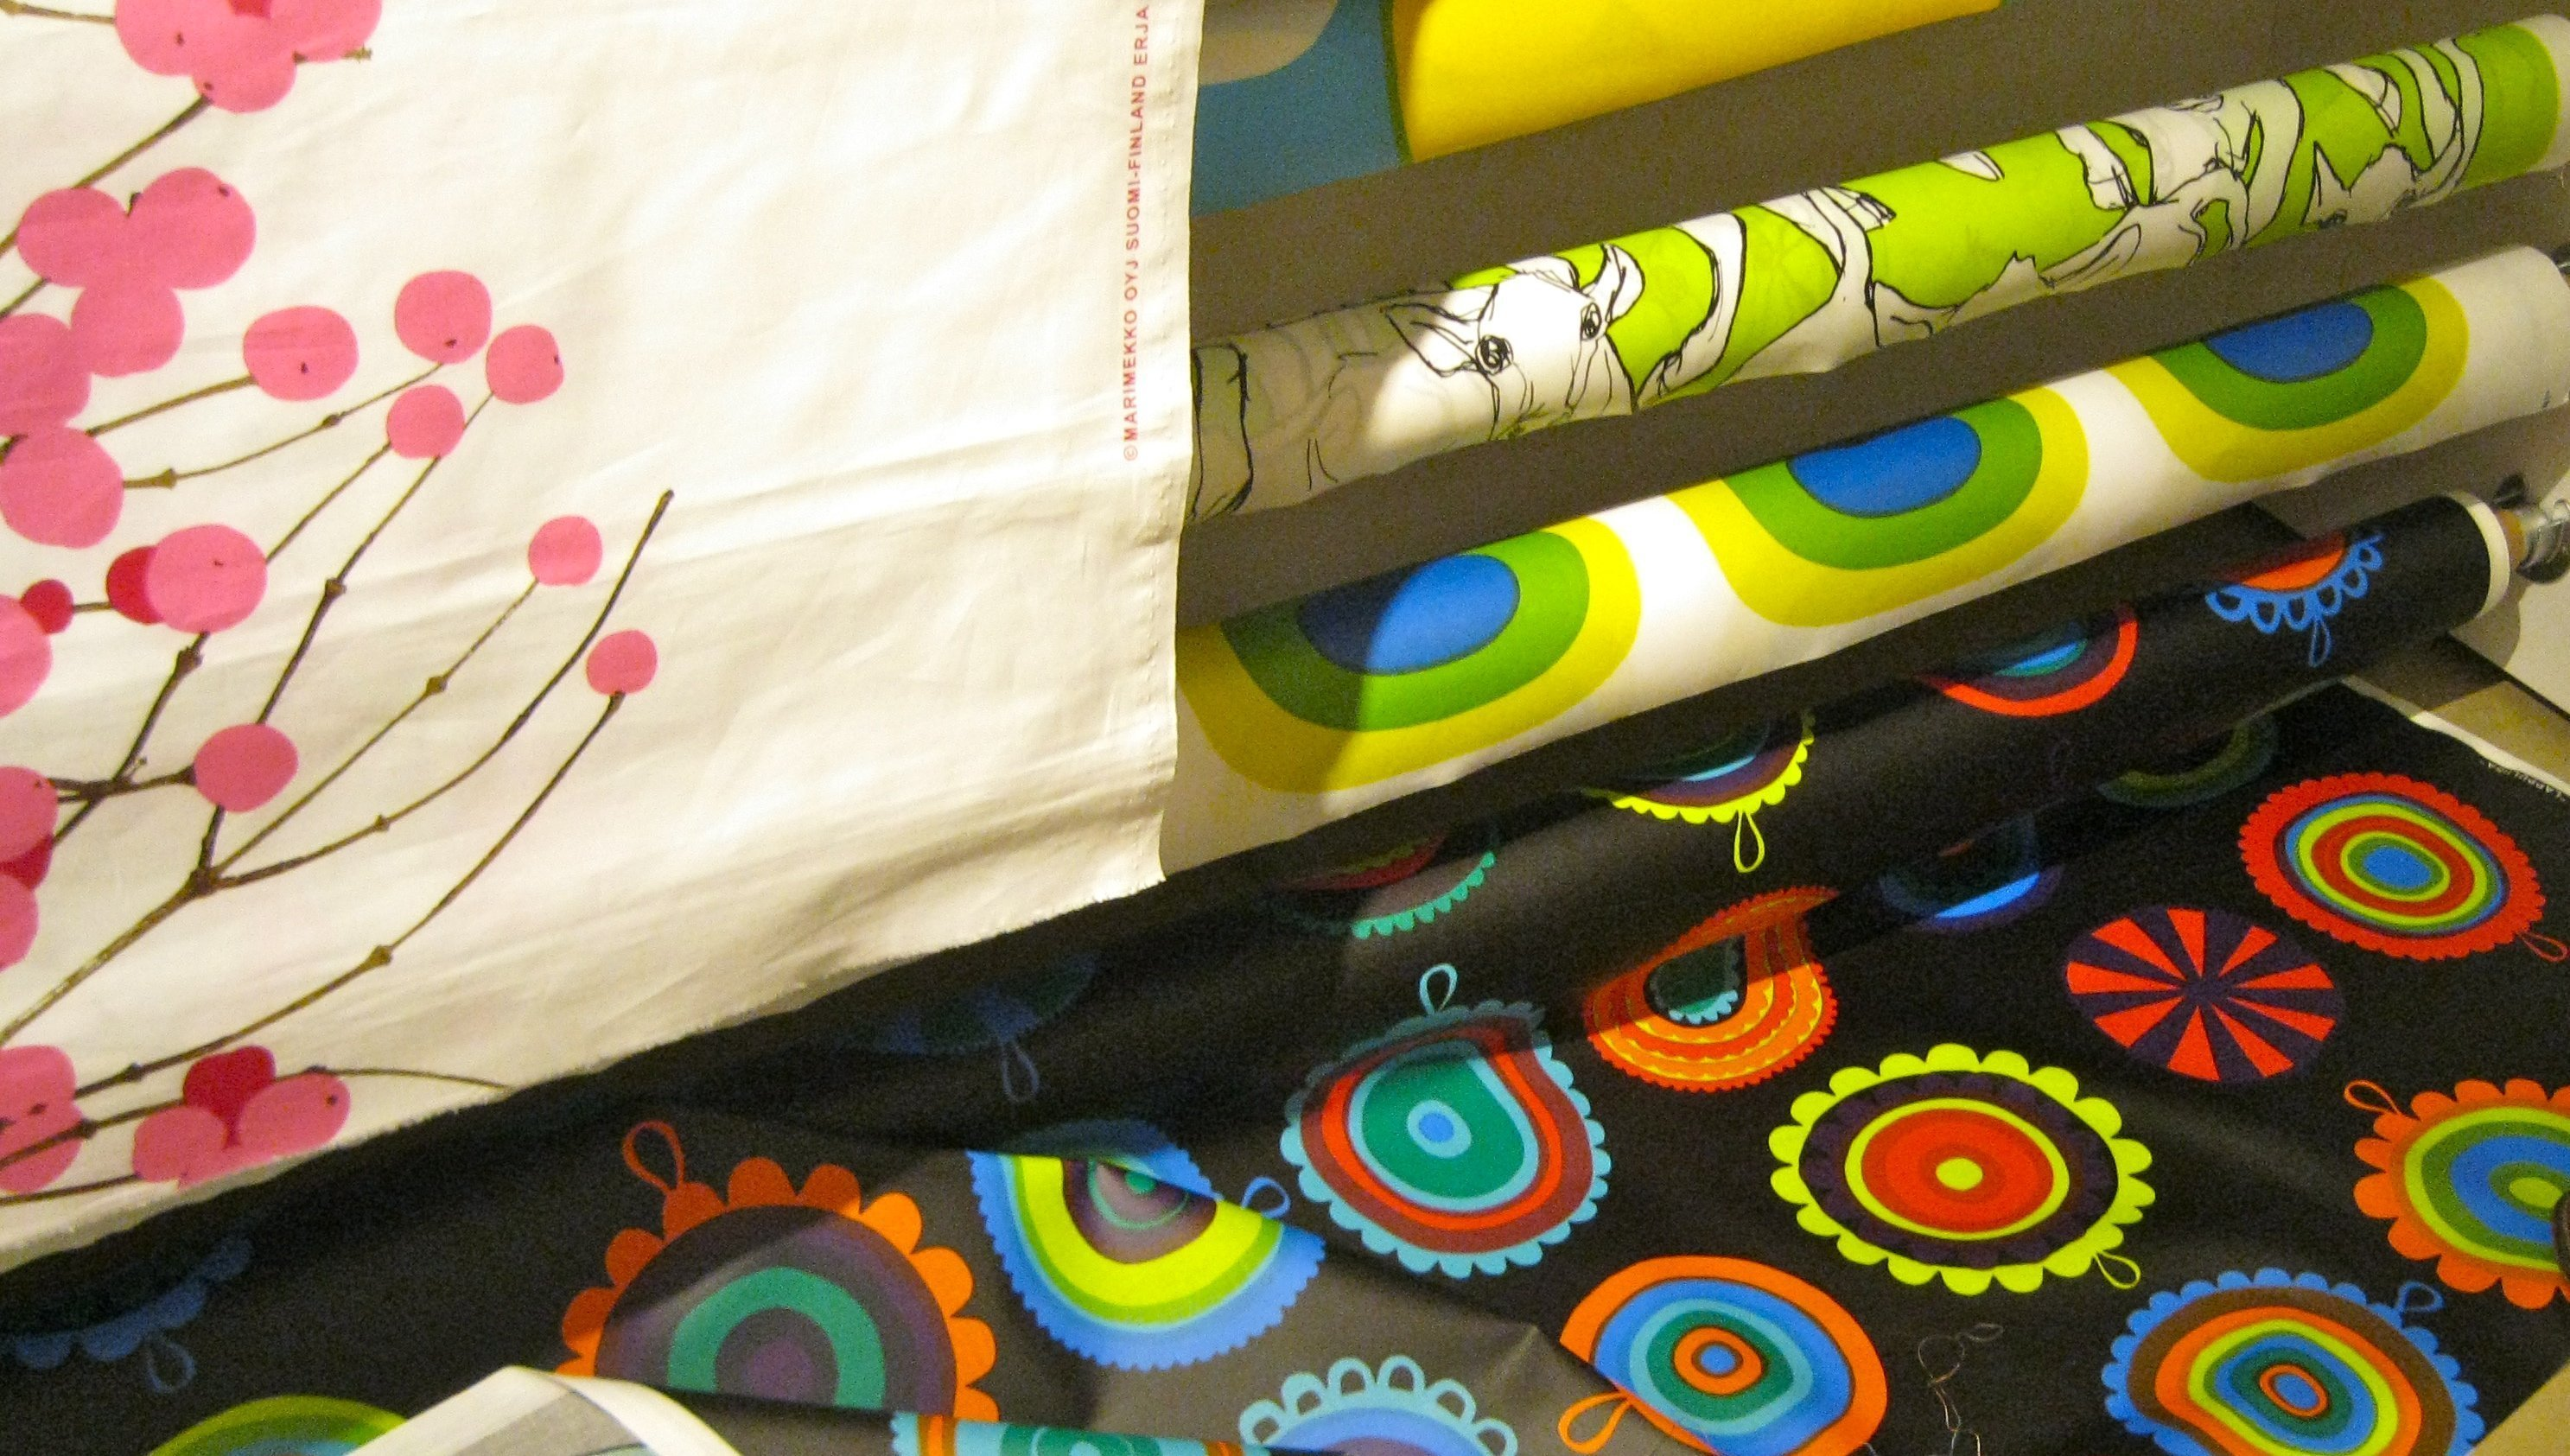 Marimekko fabric and PVC vinyl